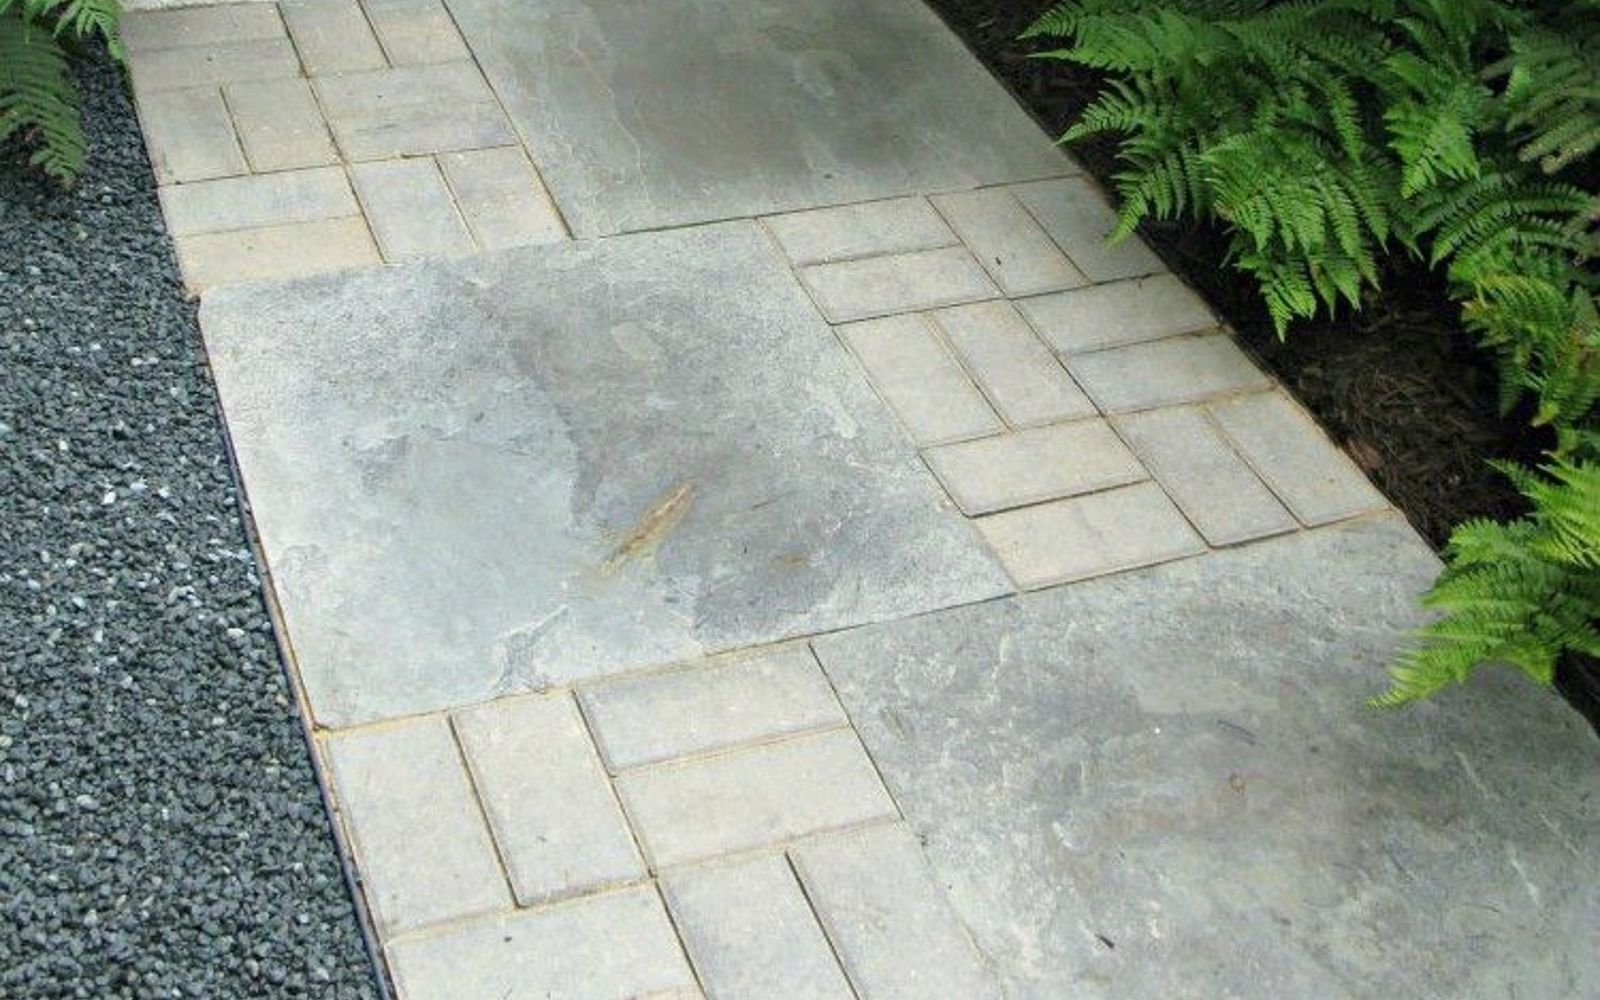 s 9 budget ways to make your walkway look even better than last year, concrete masonry, gardening, Design a trail using inexpensive pavers